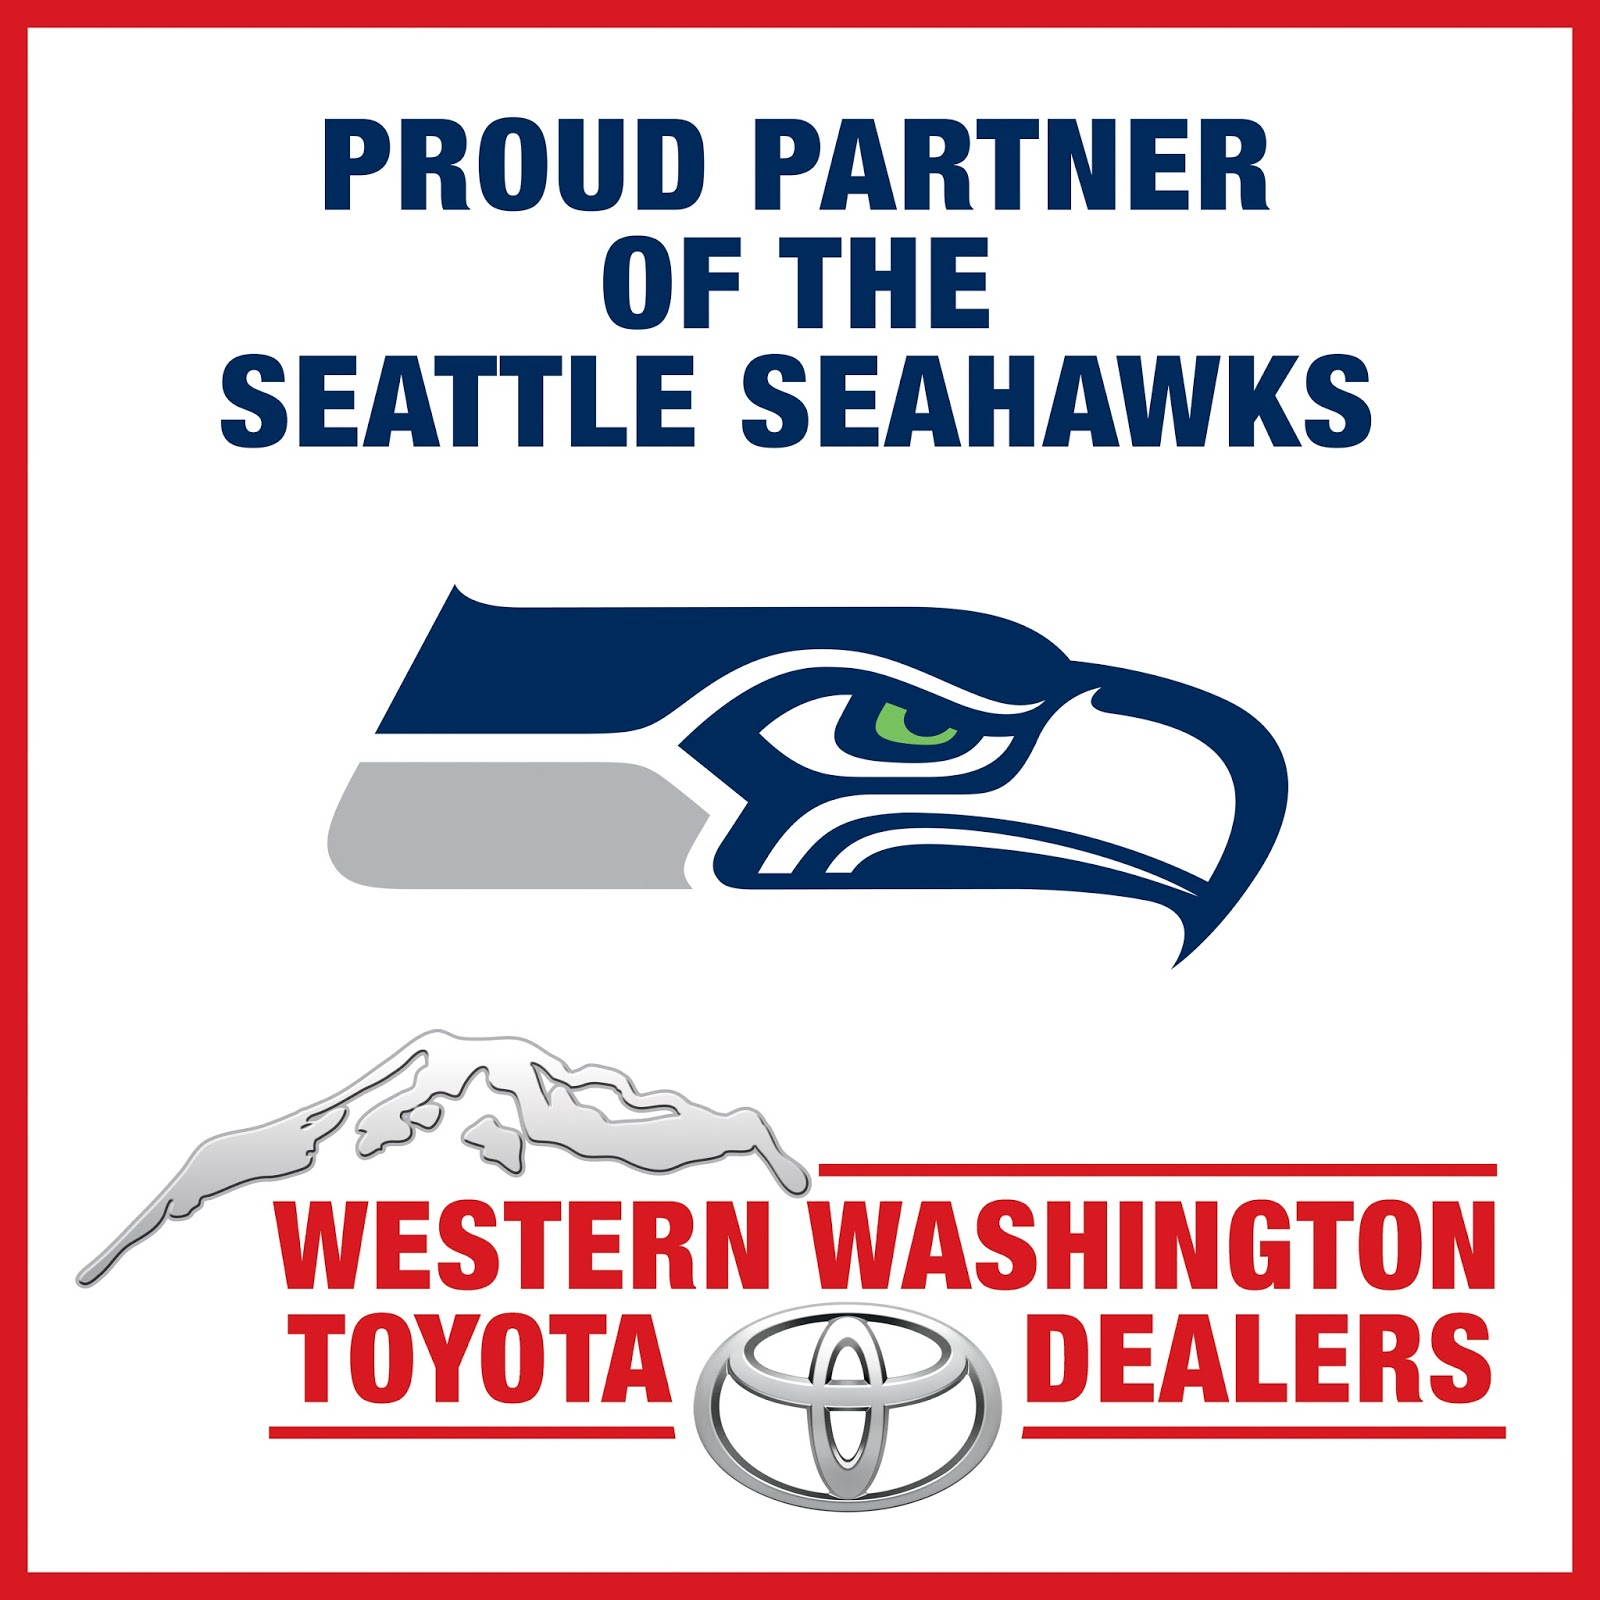 western washington honda dealers